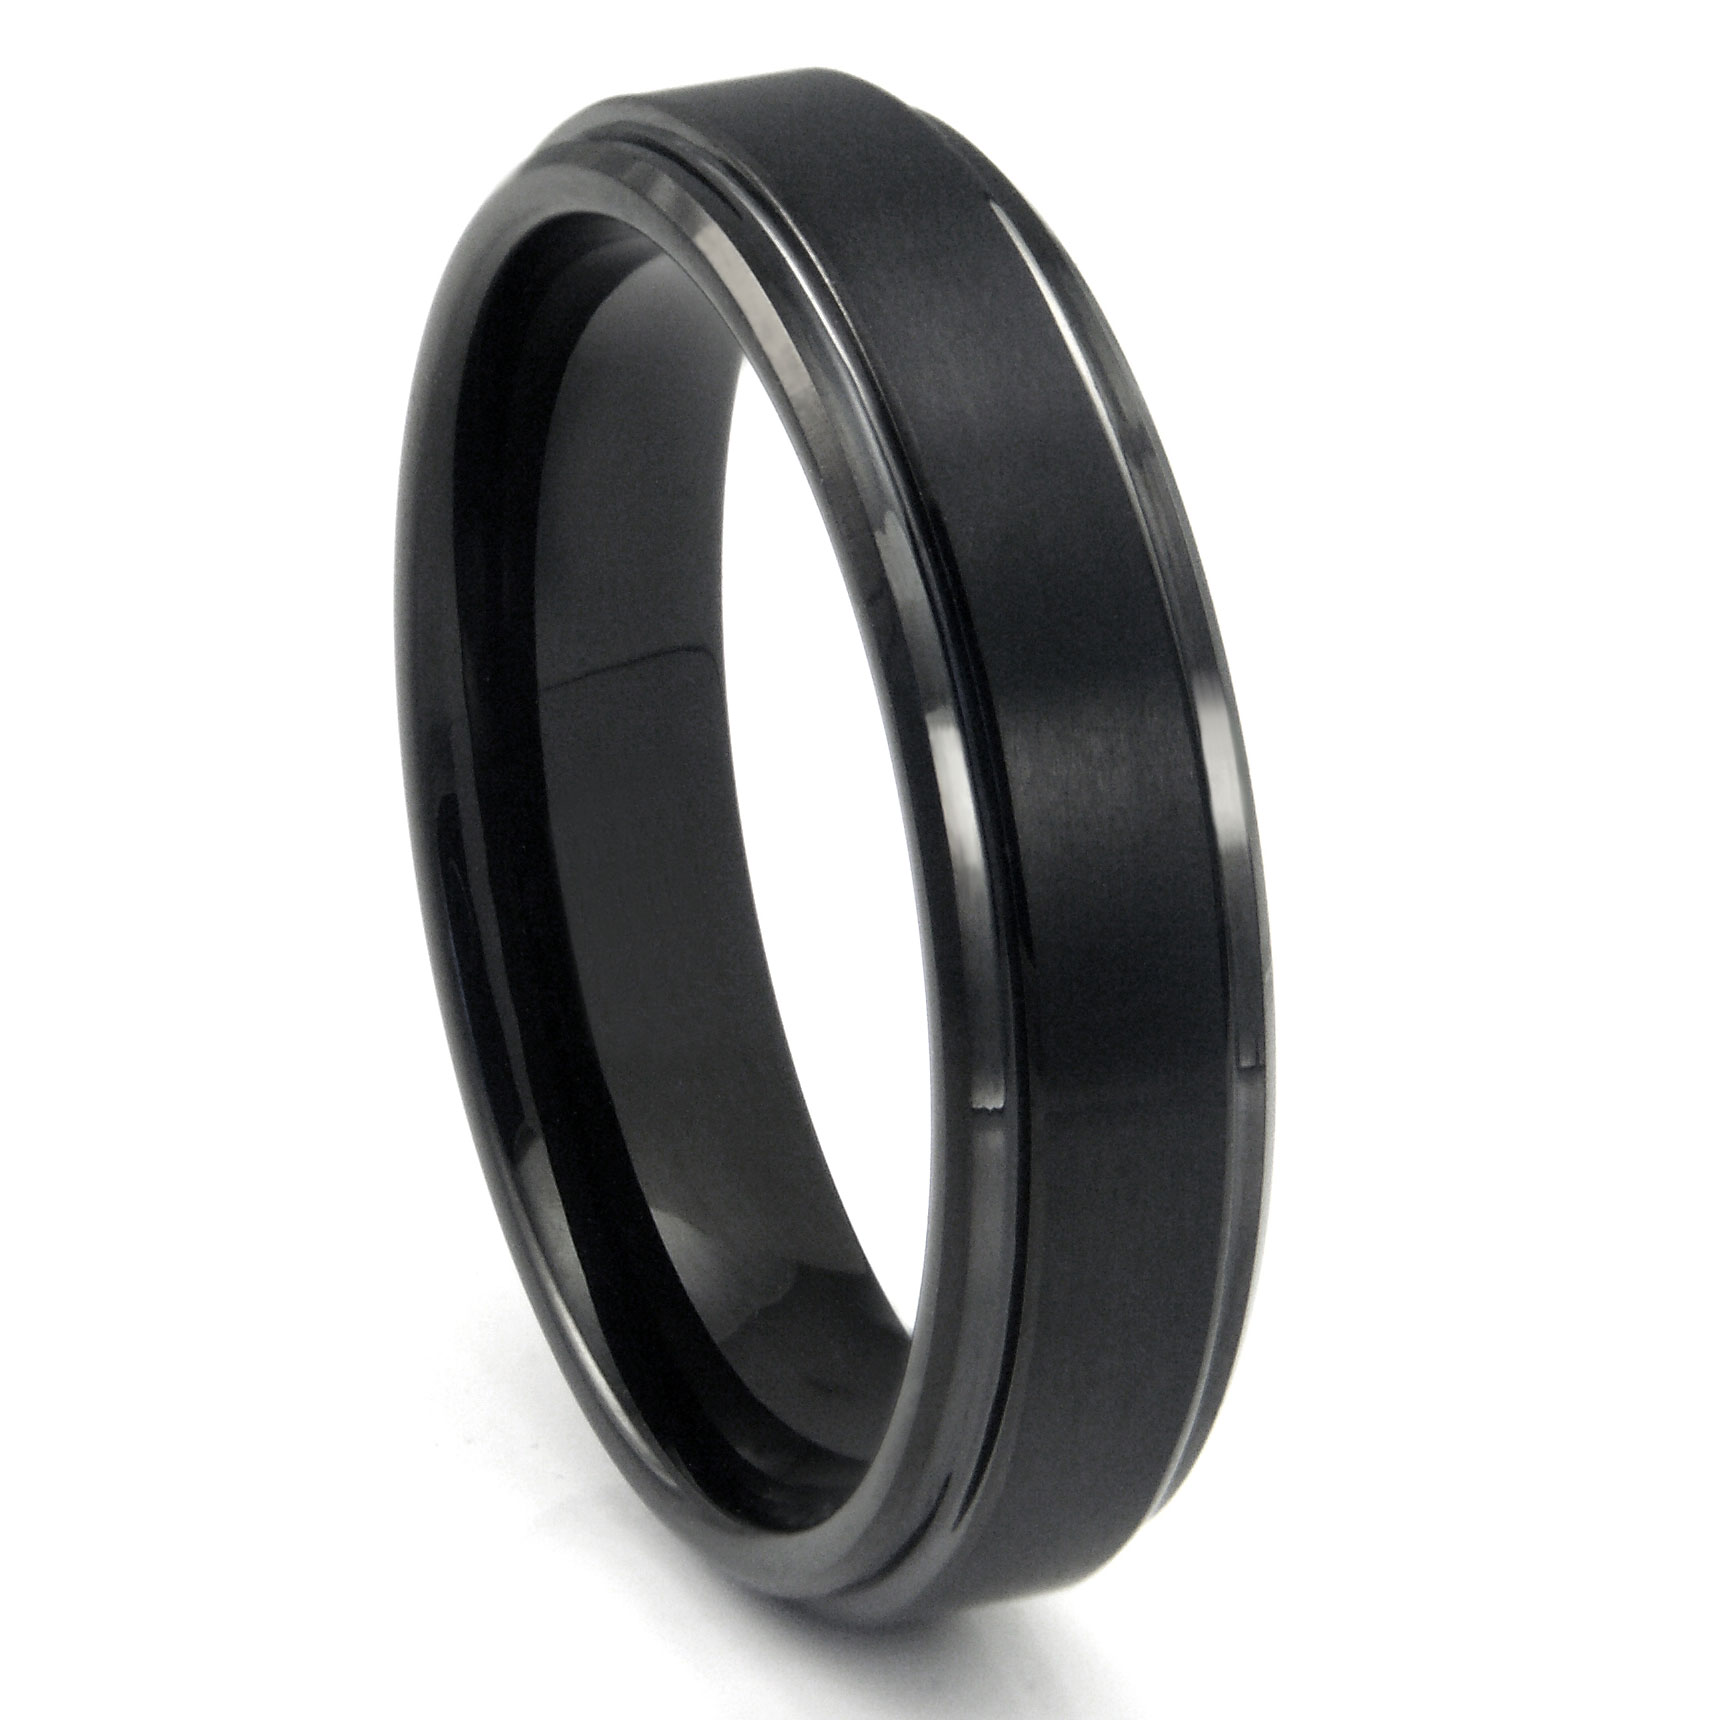 bands tungsten wedding lasered lineman design darth vader jewelry shardon item black from s men in accessories rings on